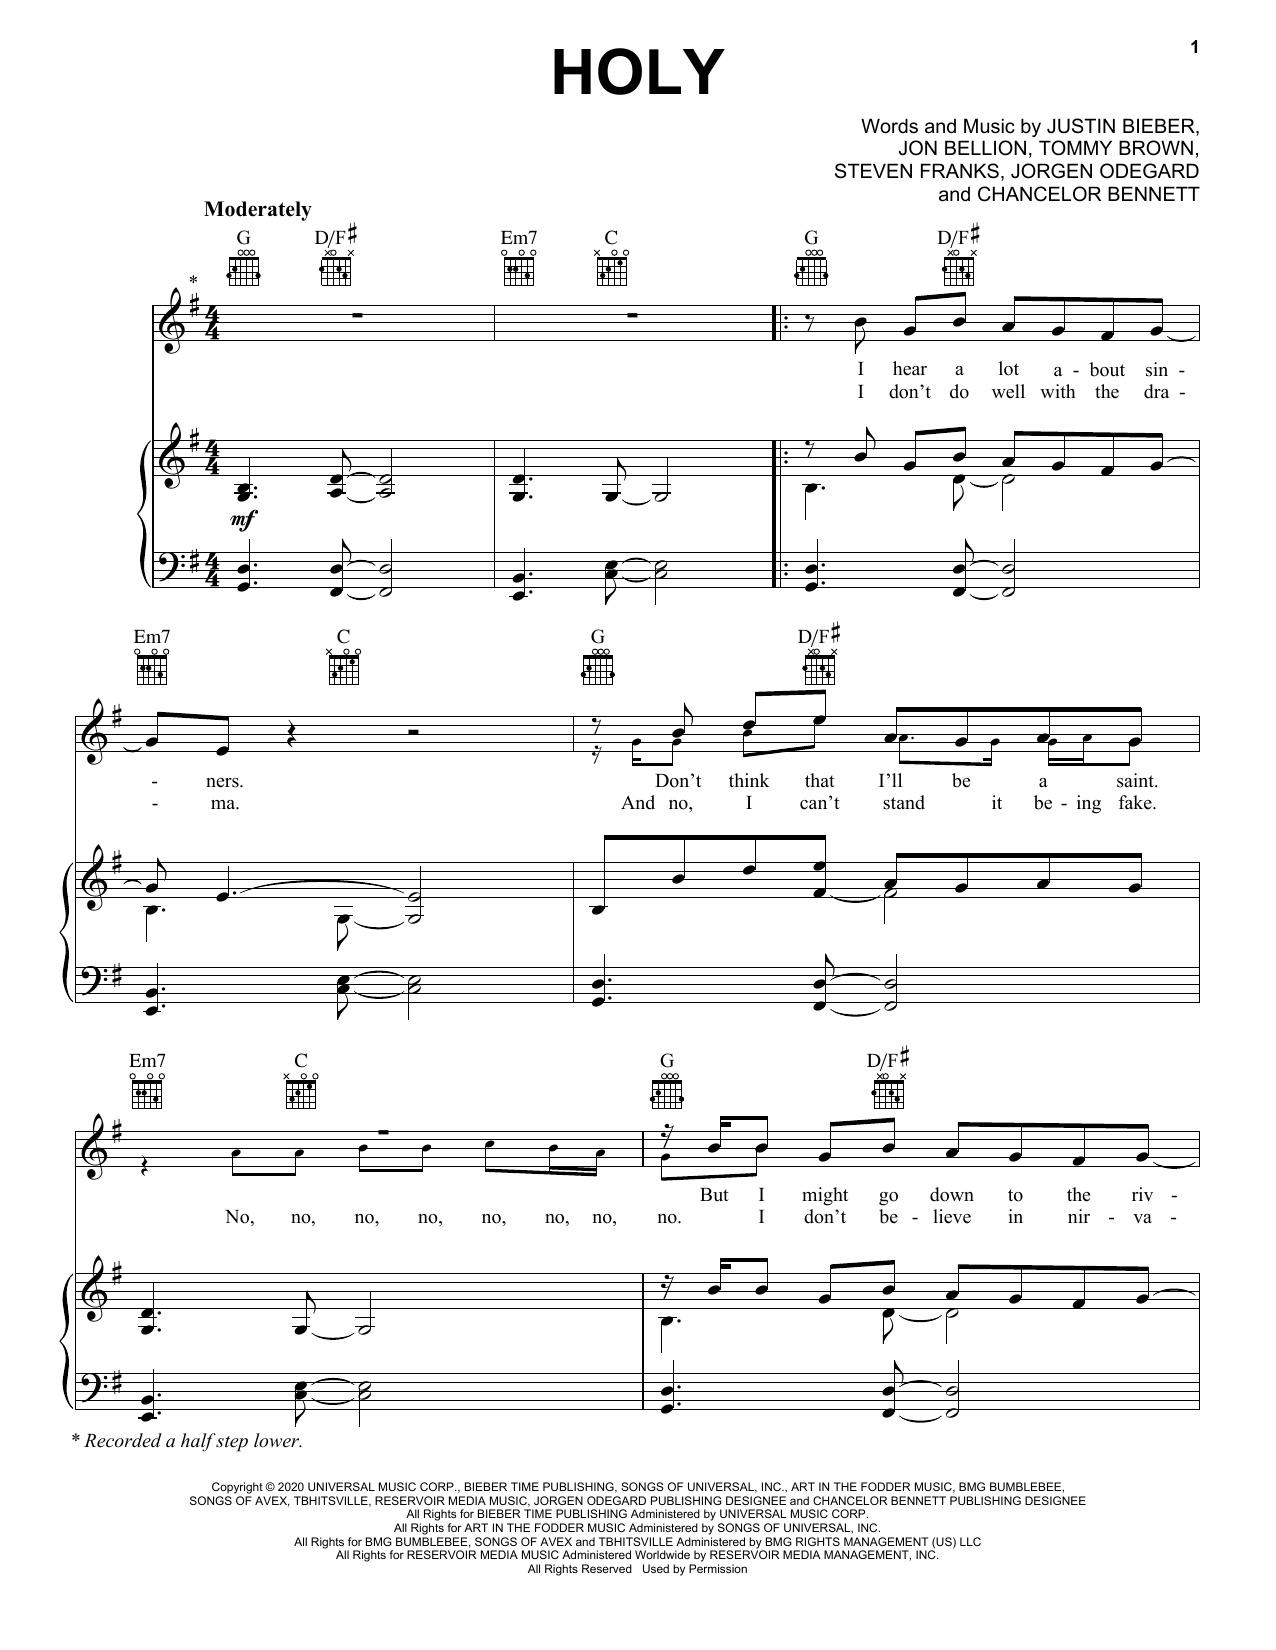 Justin Bieber Holy (feat. Chance the Rapper) sheet music notes and chords. Download Printable PDF.